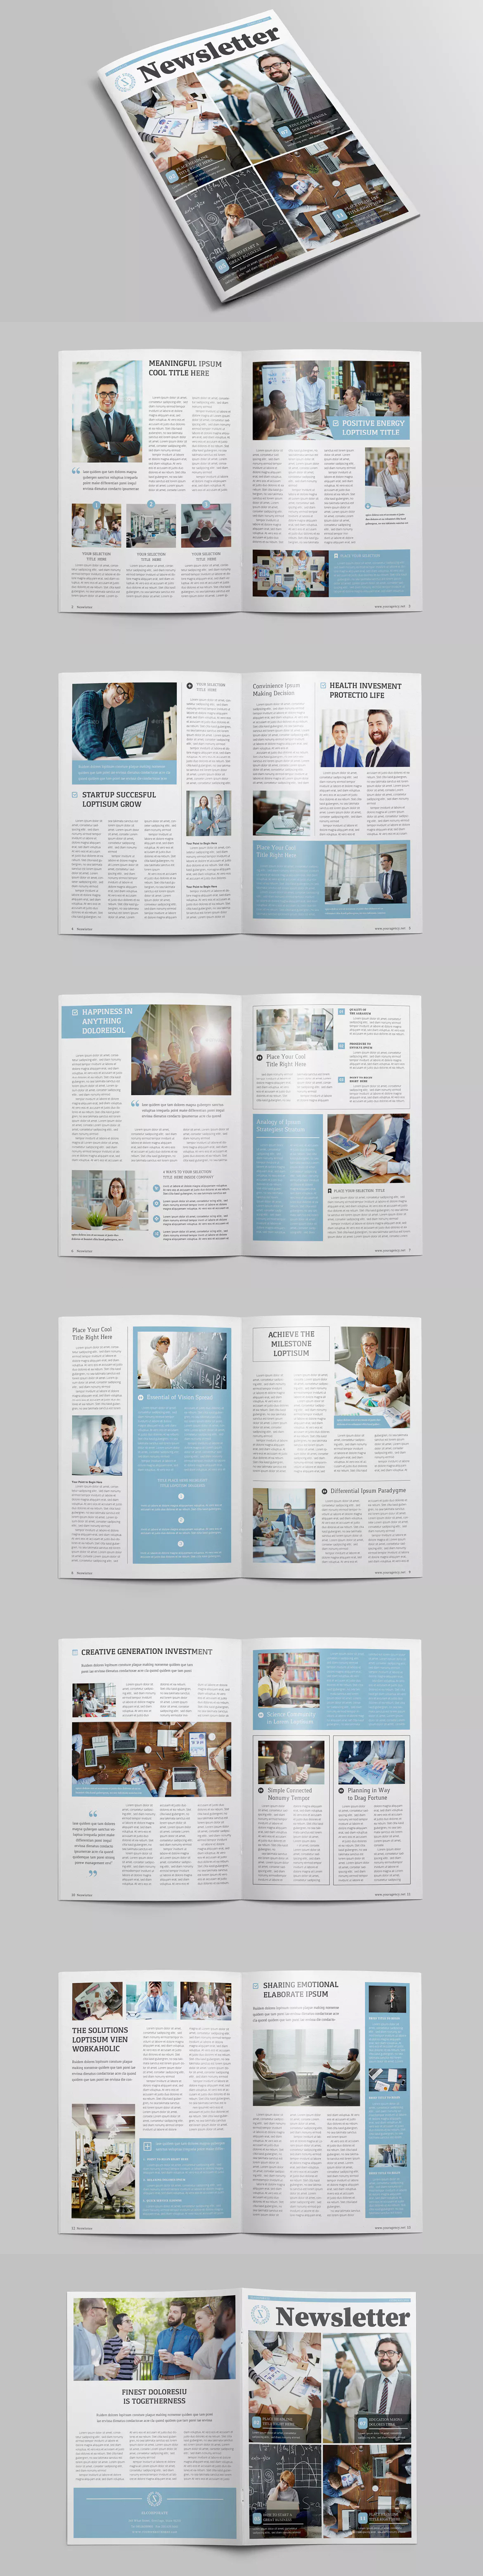 Multipurpose Newsletter Template Indd Indesign Templates